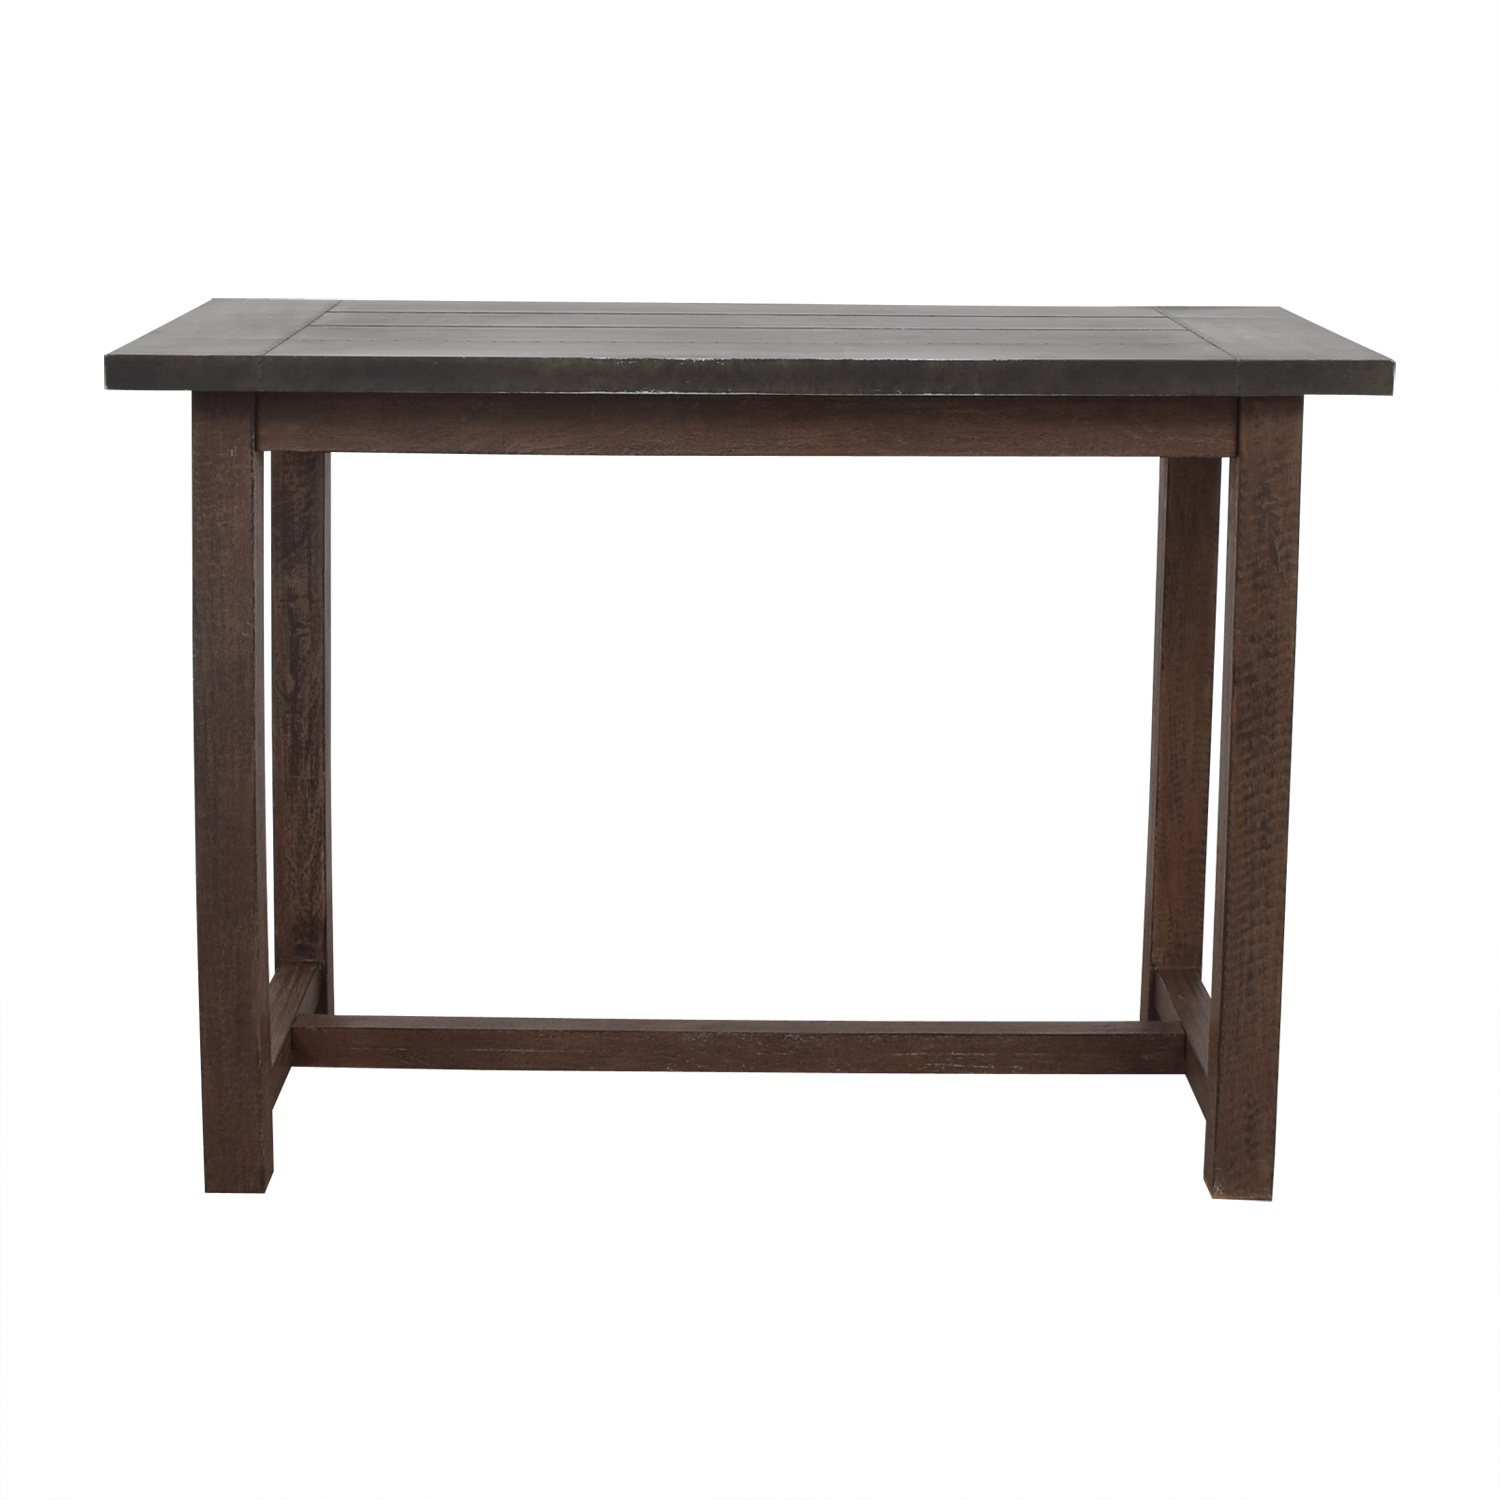 Crate & Barrel Crate & Barrel Galvin High Dining Table discount